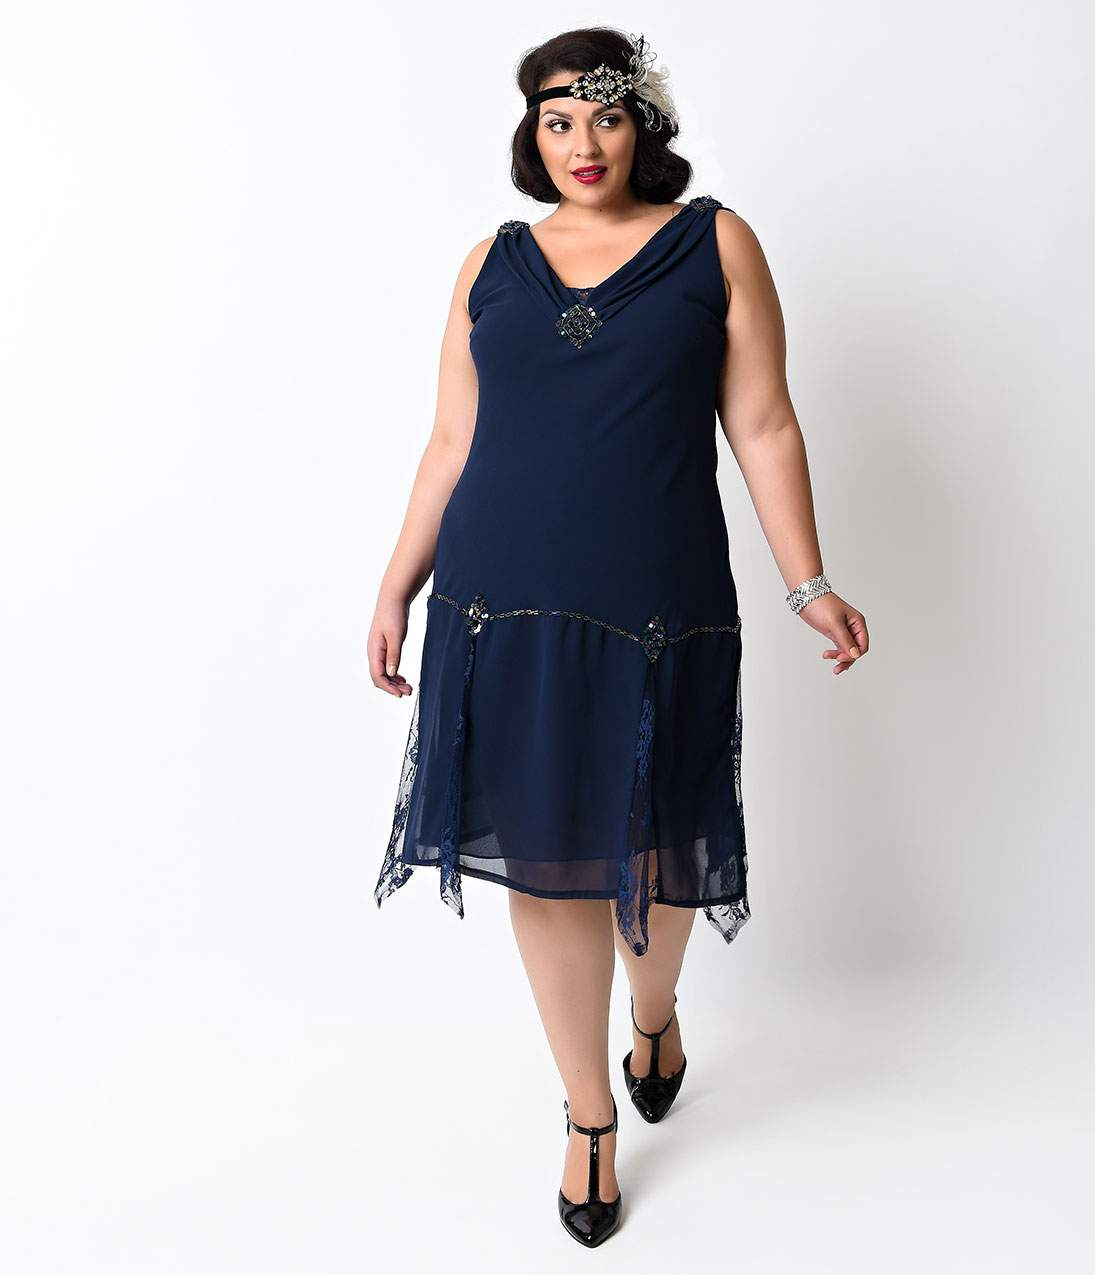 1920s Style Dresses, 20s Dresses Unique Vintage Plus Size Navy Hemingway Flapper Dress $56.00 AT vintagedancer.com